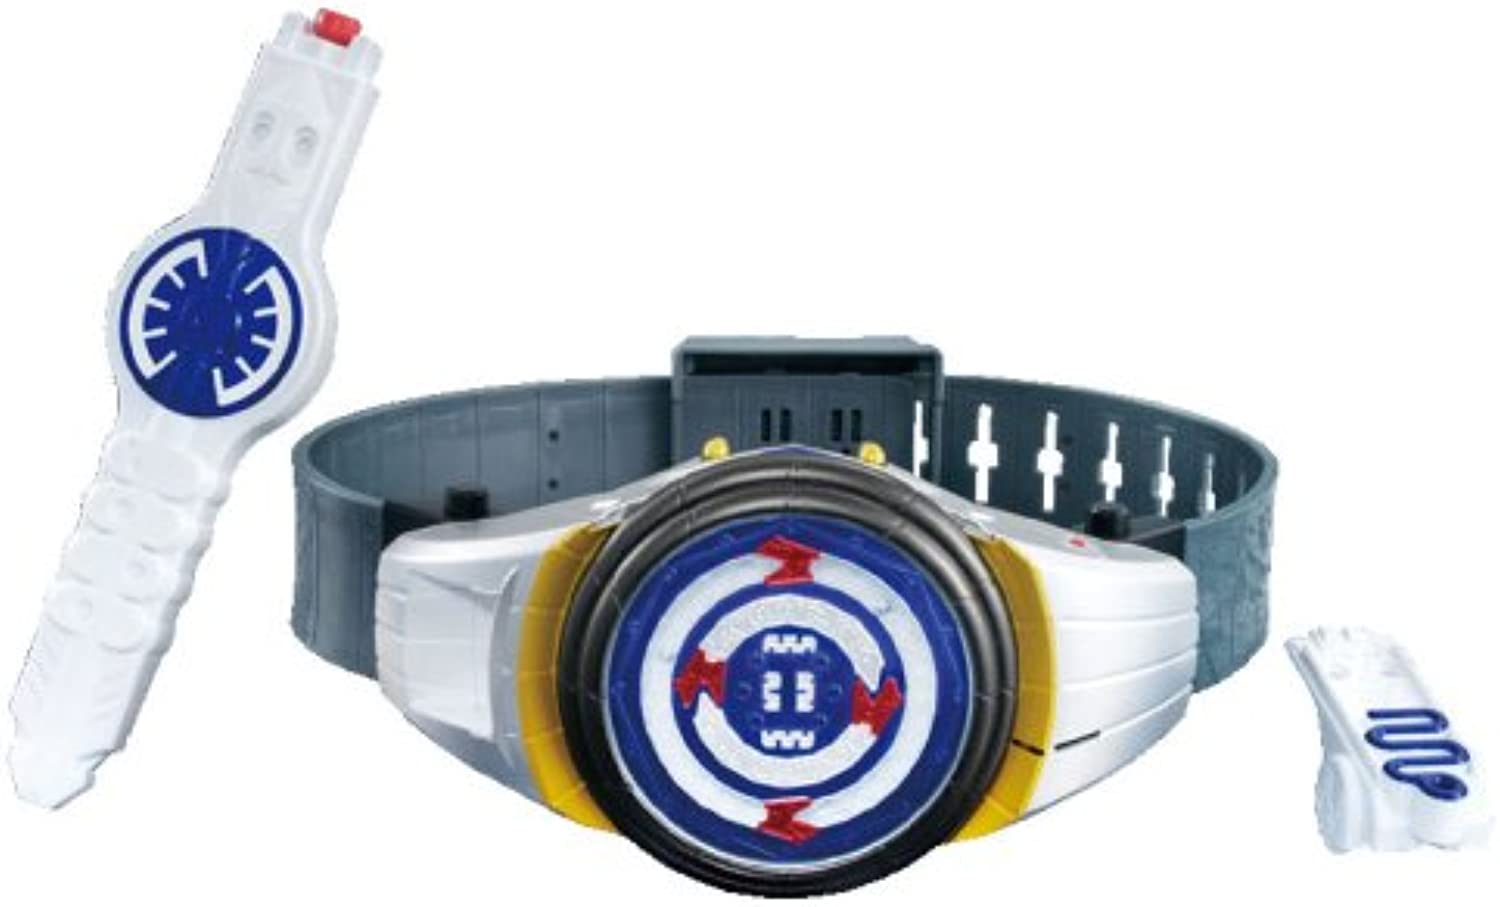 Kamen Rider Kiva Transform Belt & Jacorder DX sagak belt (japan import)